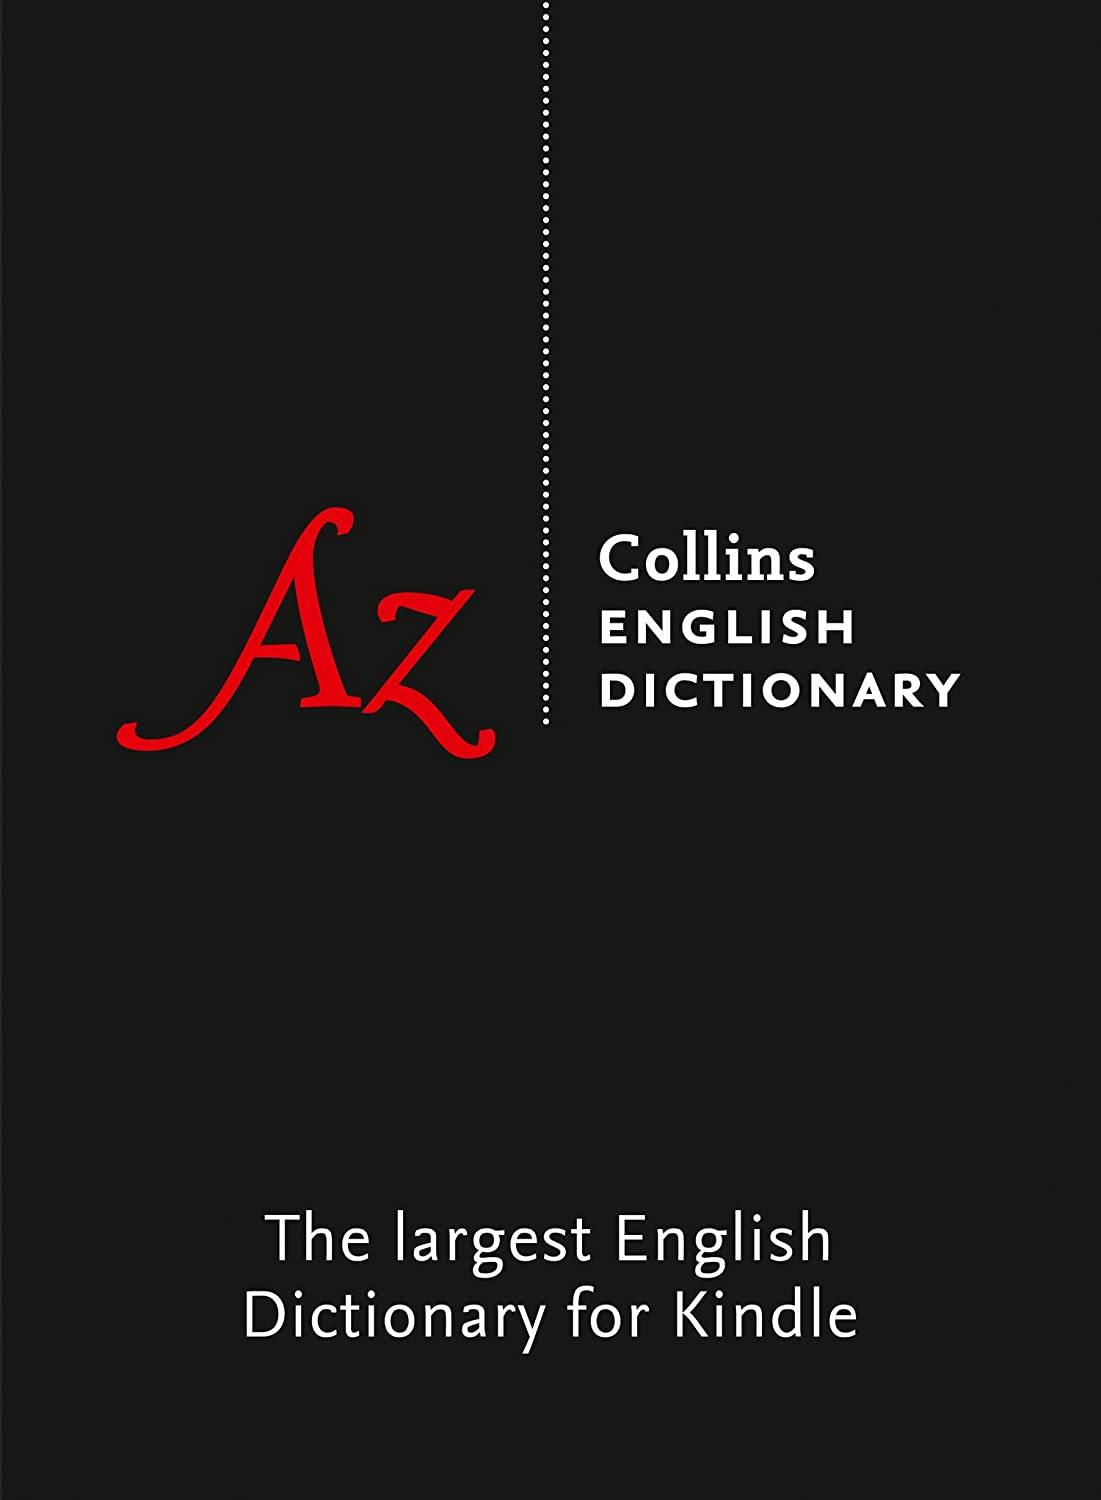 English Dictionary Complete and Unabridged: More than 725,000 words meanings and phrases (Collins Complete and Unabridged) (English Edition) eBook: Collins Dictionaries: Amazon.es: Tienda Kindle